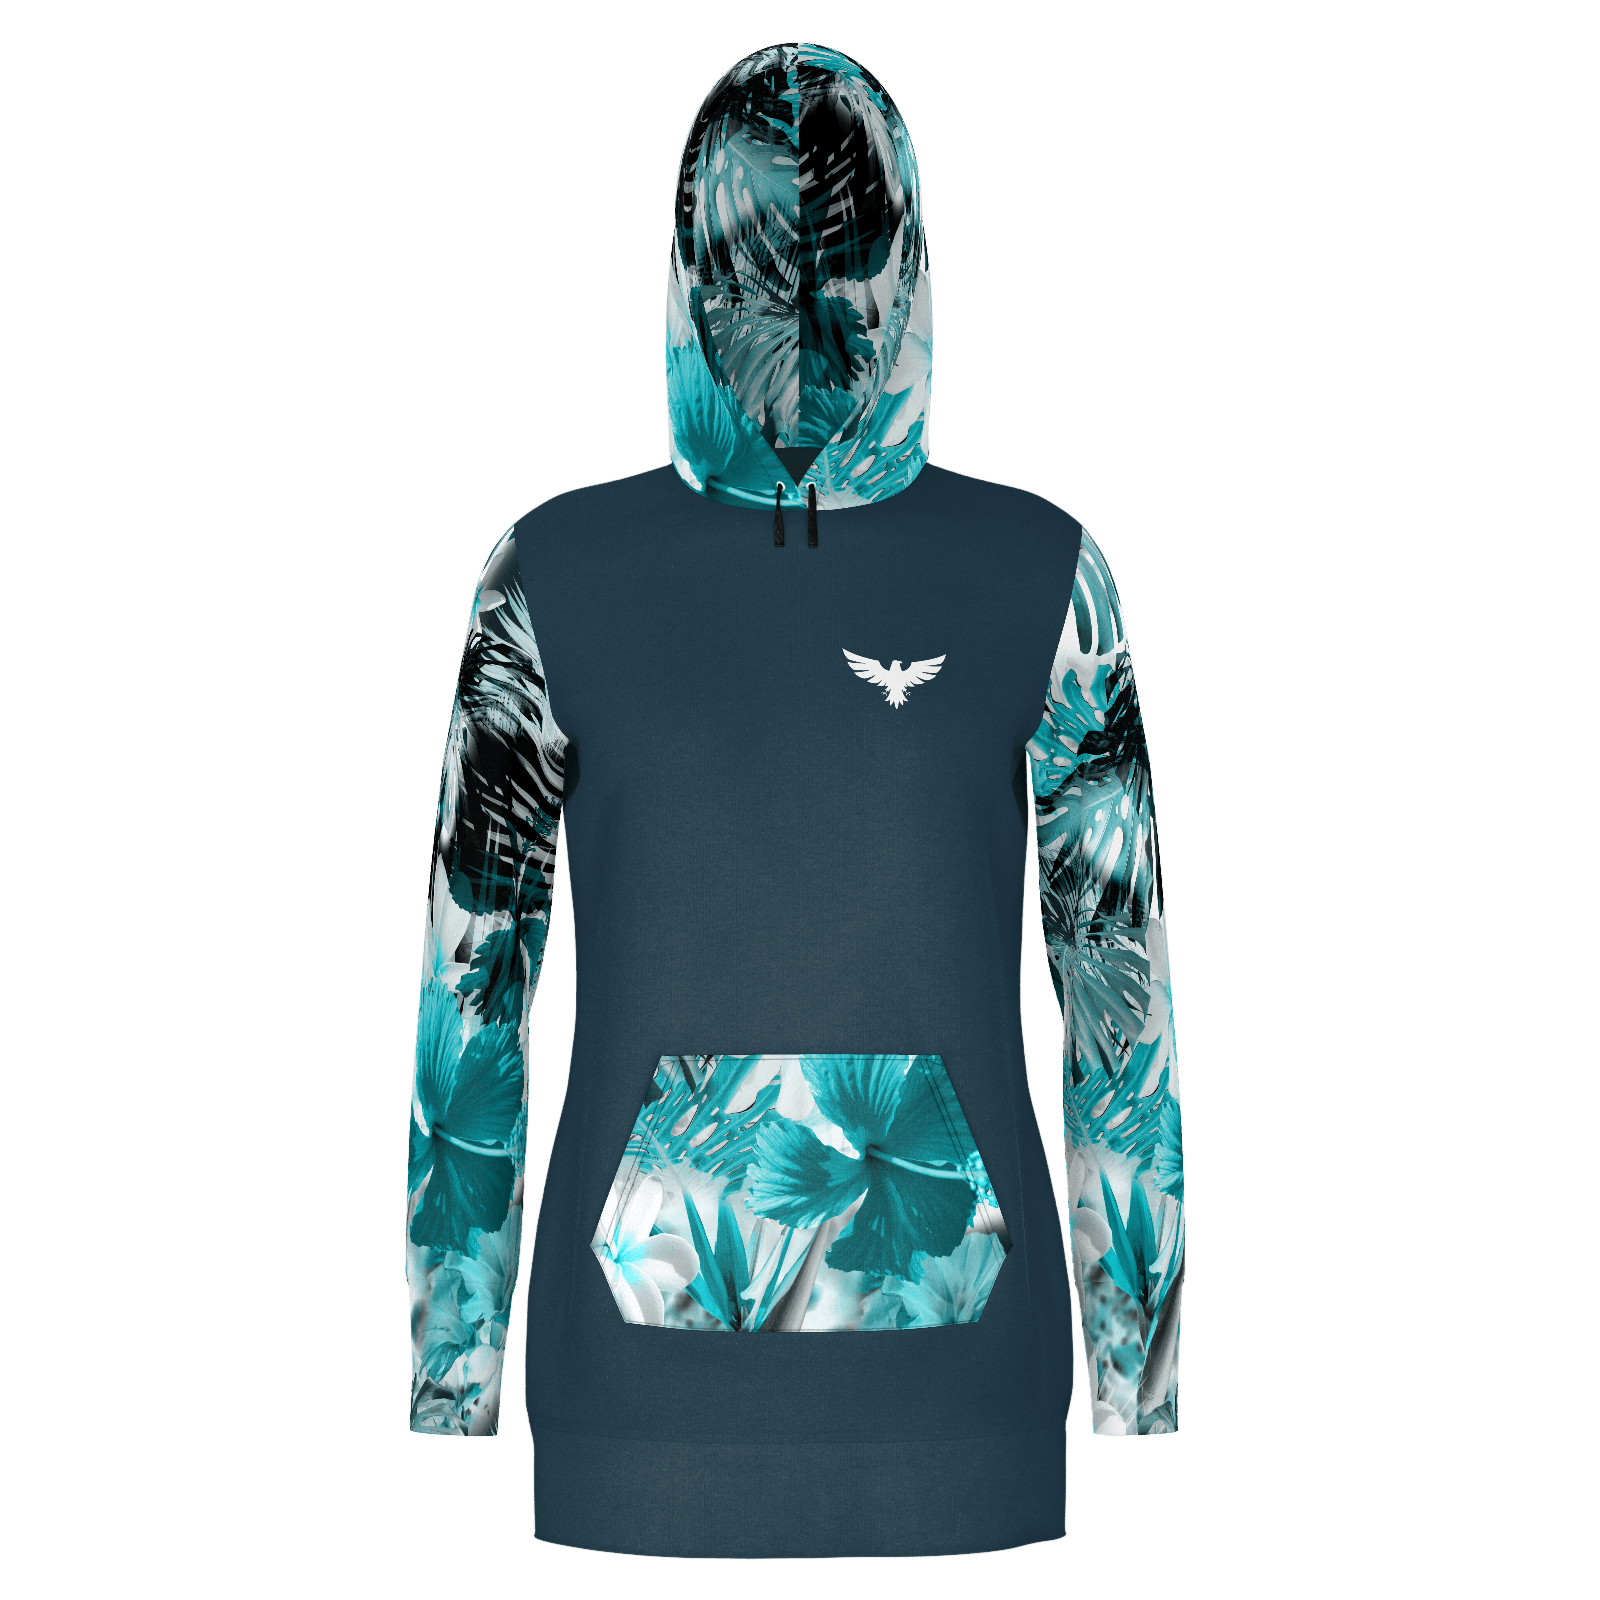 Women's My Sundays Navy Sustainable Pullover Hoodie Dress - Find Your Coast Supply Co.